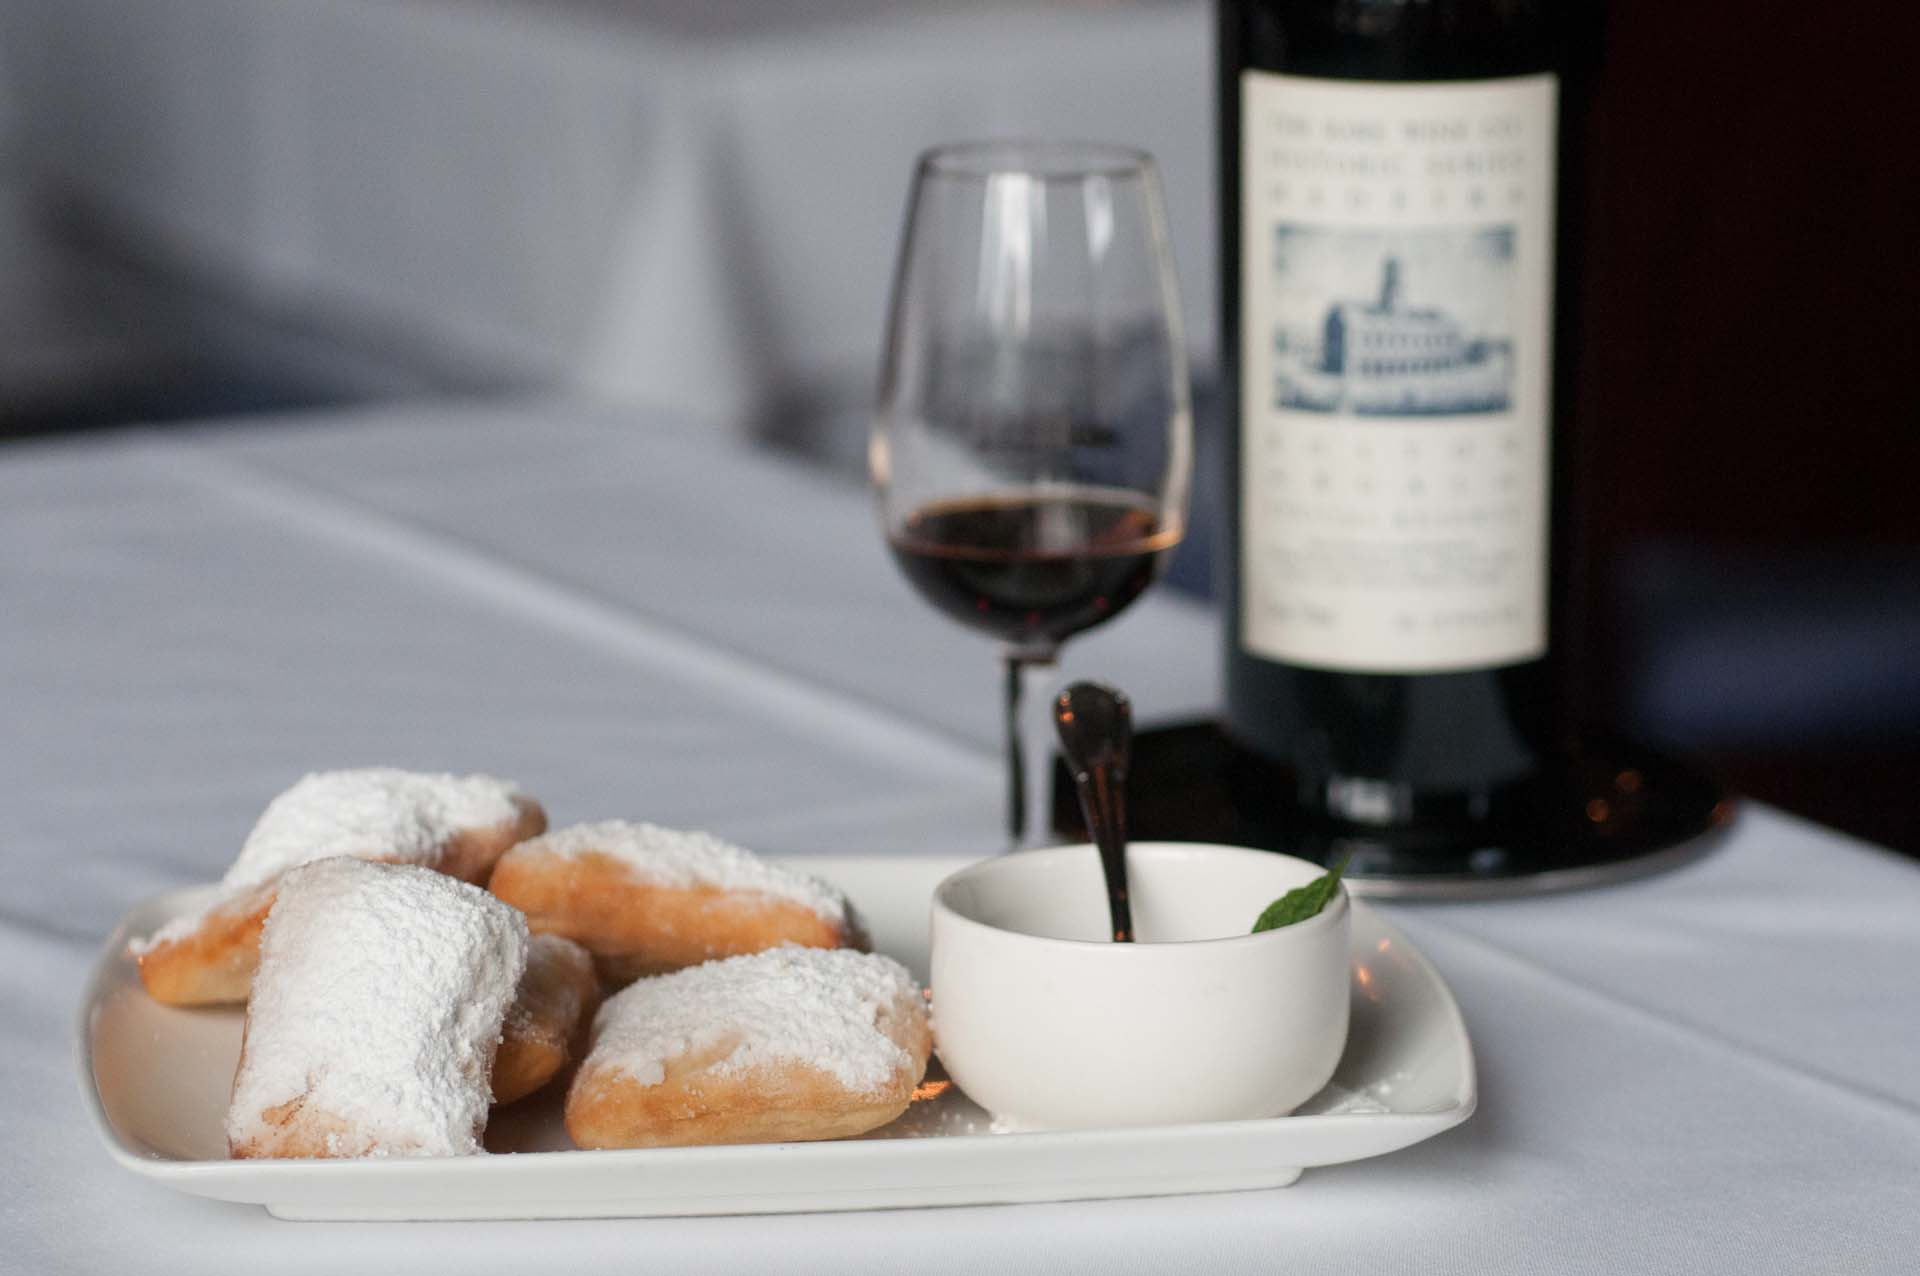 Beignets, Powdered Sugar, and Bourbon-Caramel Sauce paired with Bual, Boston Bual, The Rare Wine Co. Historic Series, Madeira, Portugal